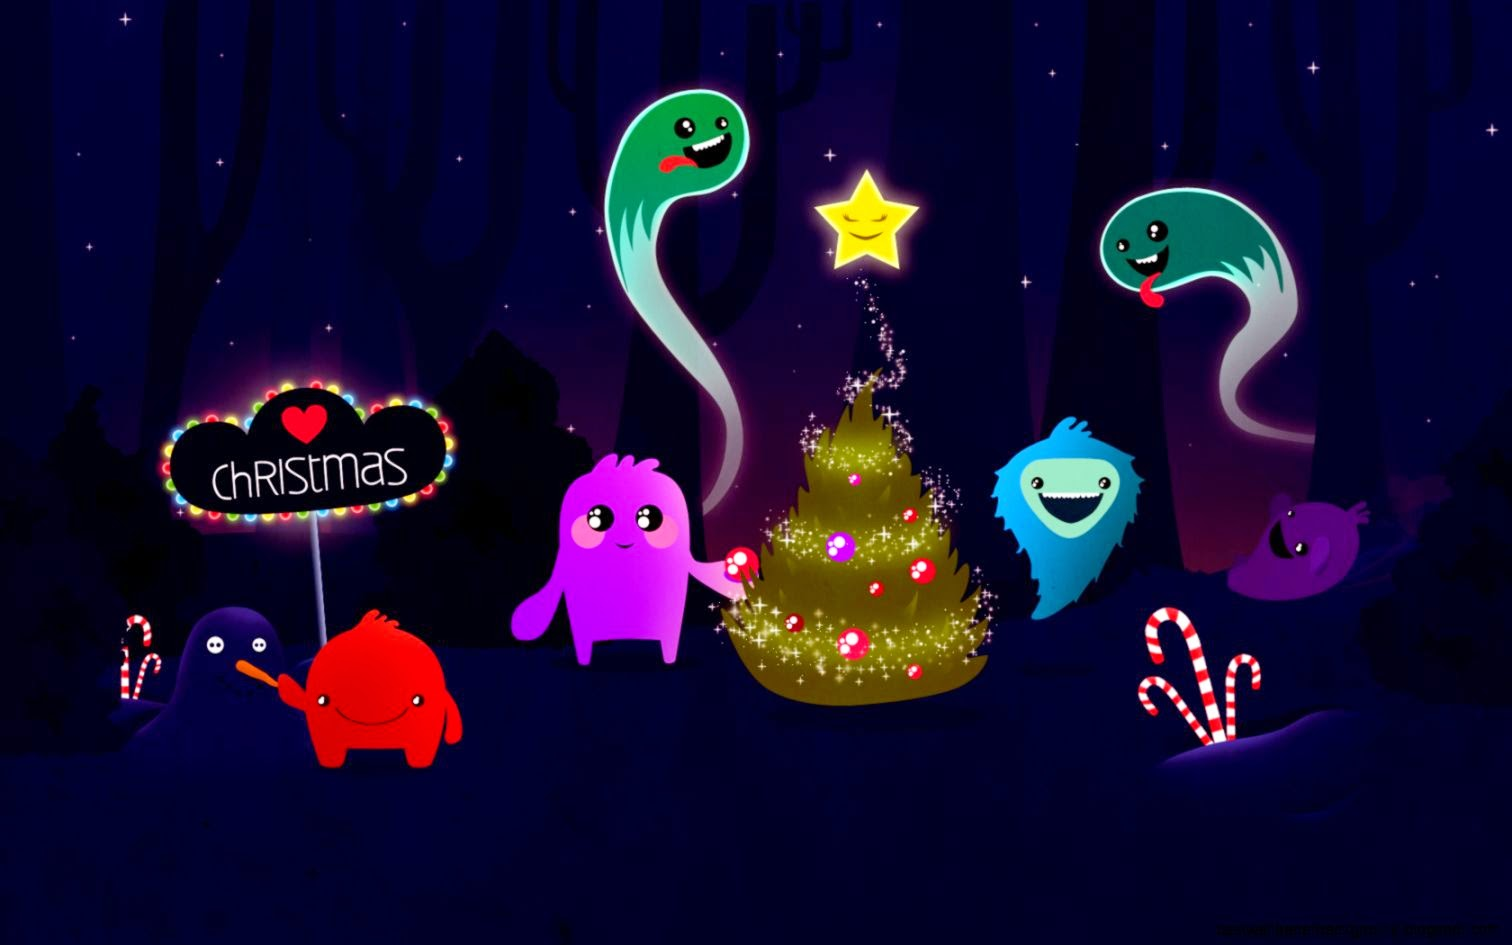 Animated Christmas Powerpoint Presentation Best Wallpaper Background